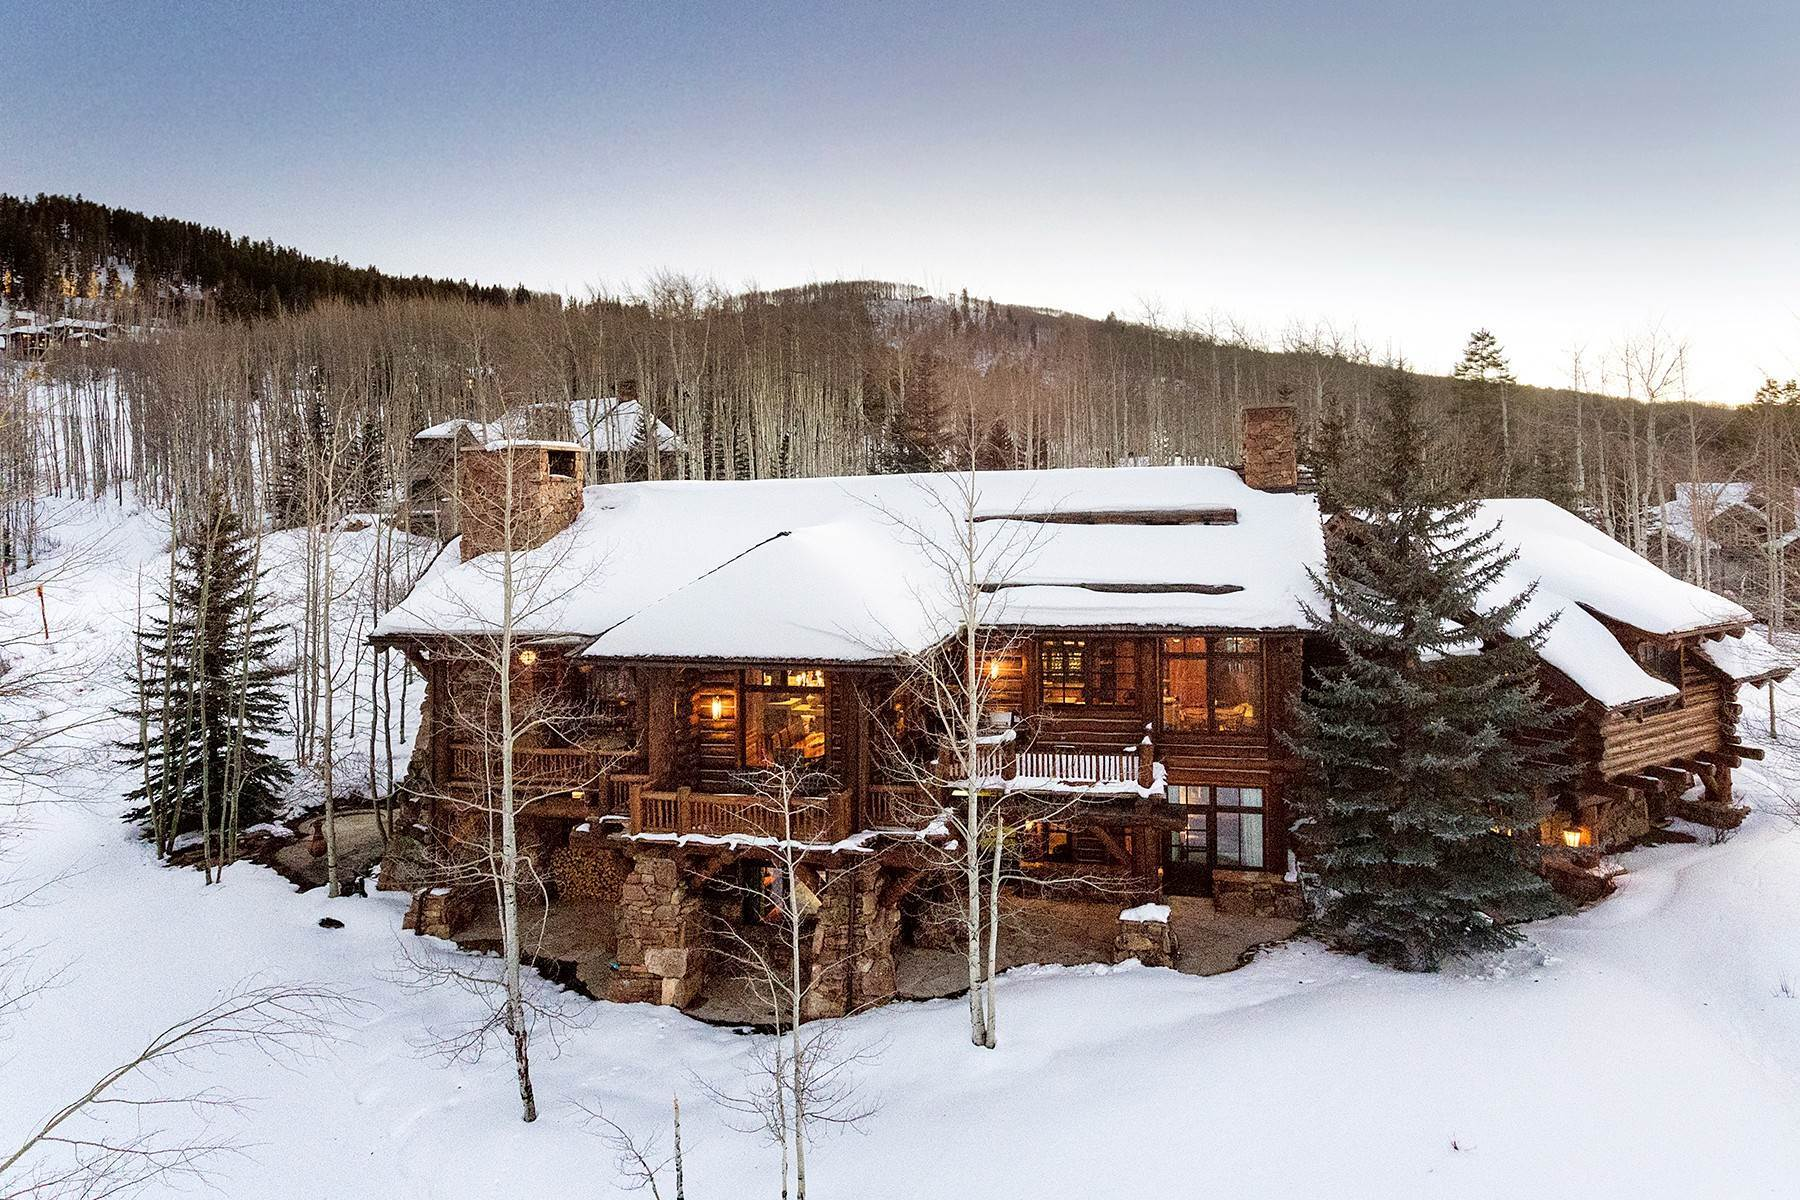 singles in beaver creek Discover premium amenities, luxury rooms and suites, value added packages, and fantastic beaver creek hotel deals at our park hyatt resort book today.